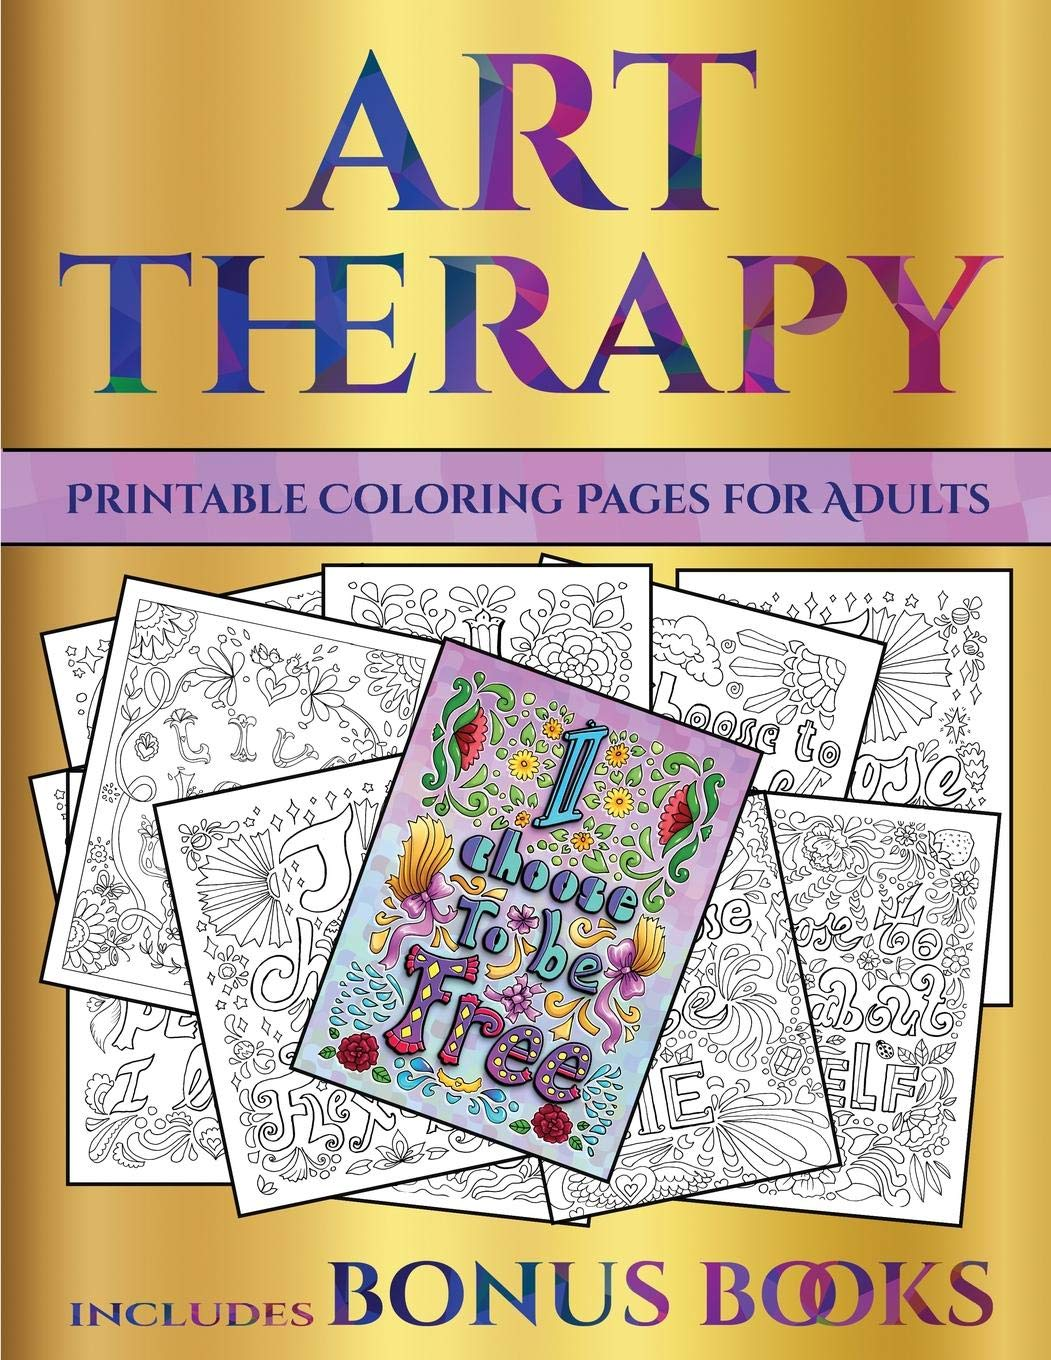 Printable Coloring Pages For Adults Art Therapy This Book